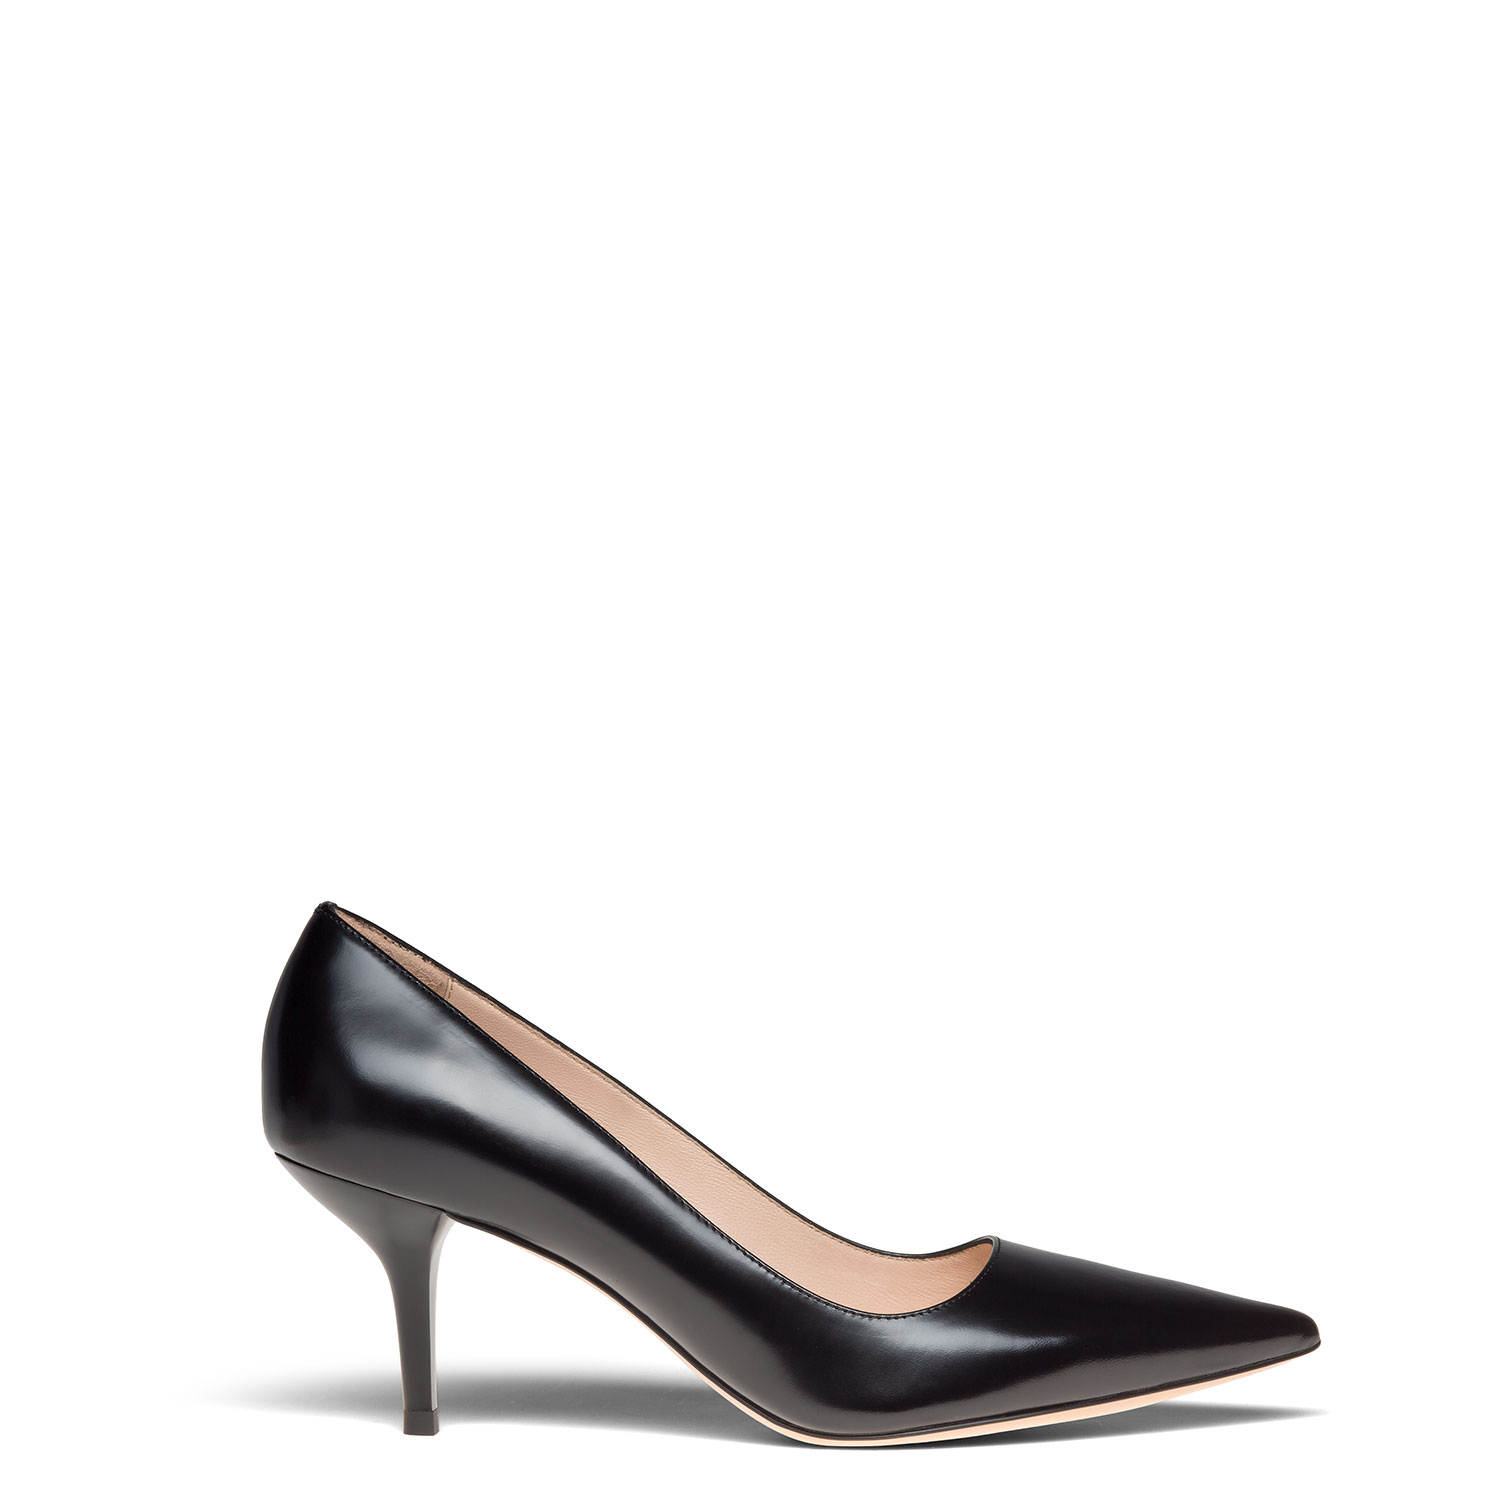 Women's shoes CARLO PAZOLINI FL-AEA1-1